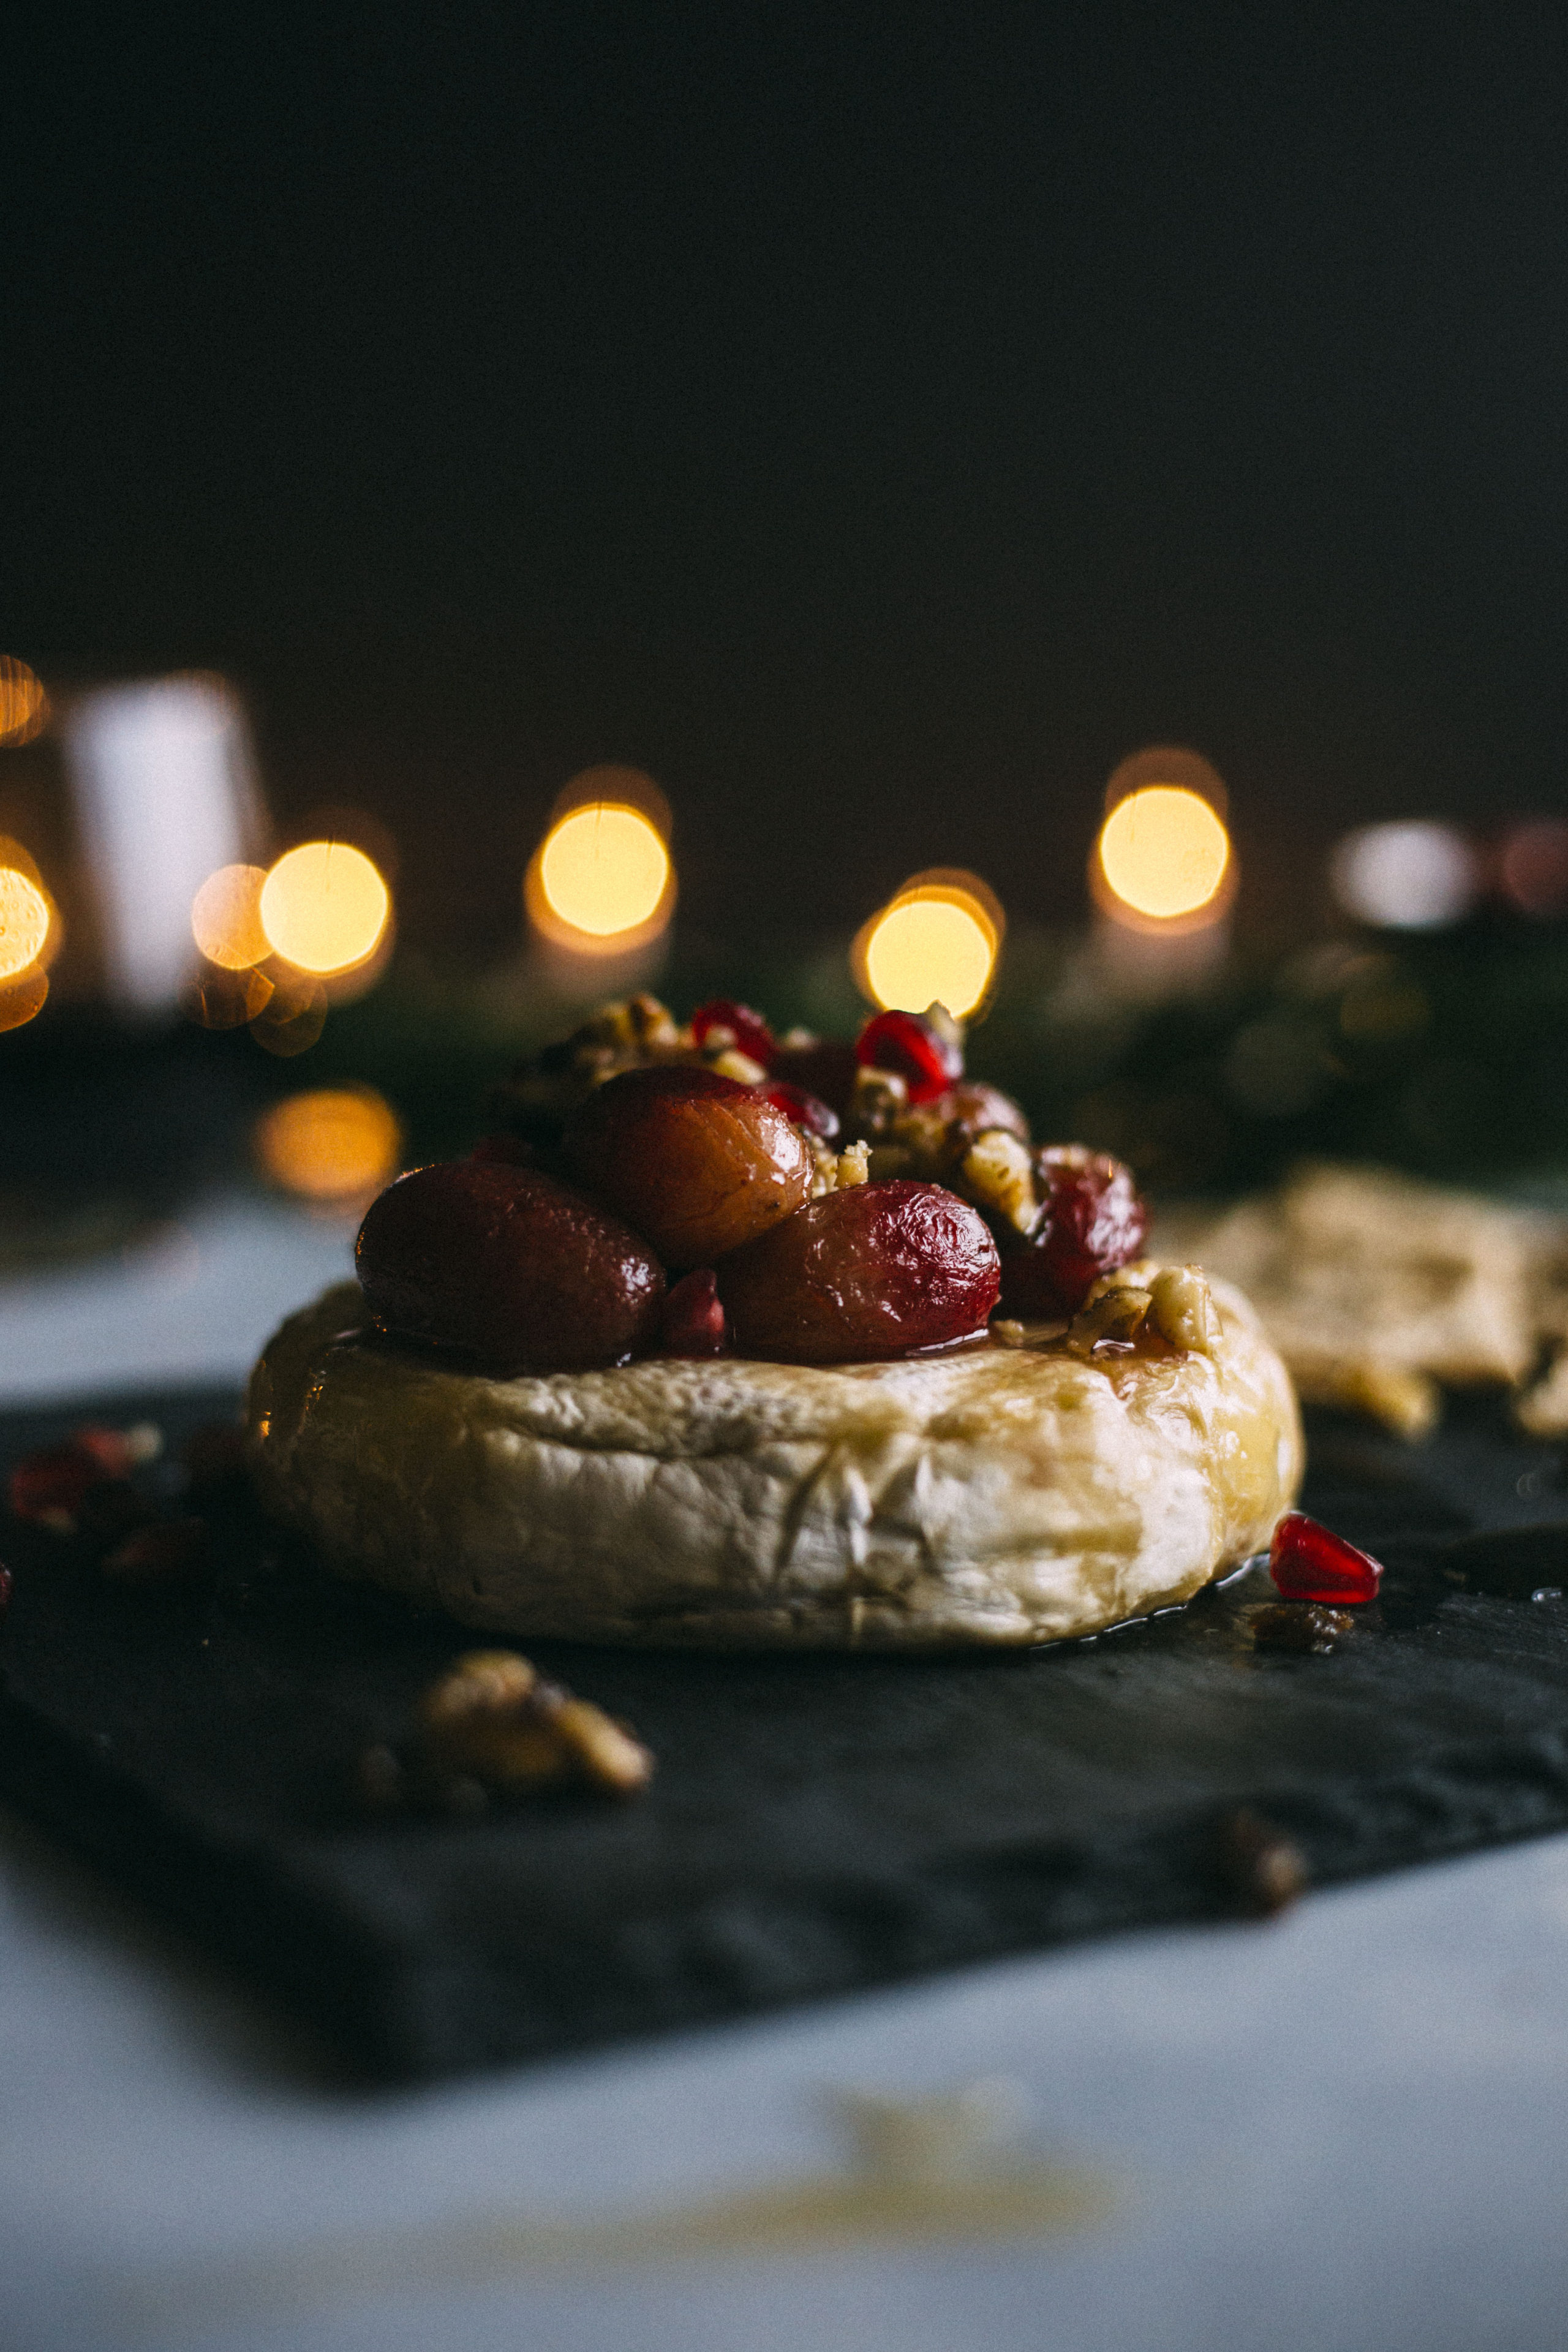 Roasted Grape Baked Brie | Baked brie topped with grapes, caramelized walnuts and honey, aka the perfect appetizer! | thealmondeater.com